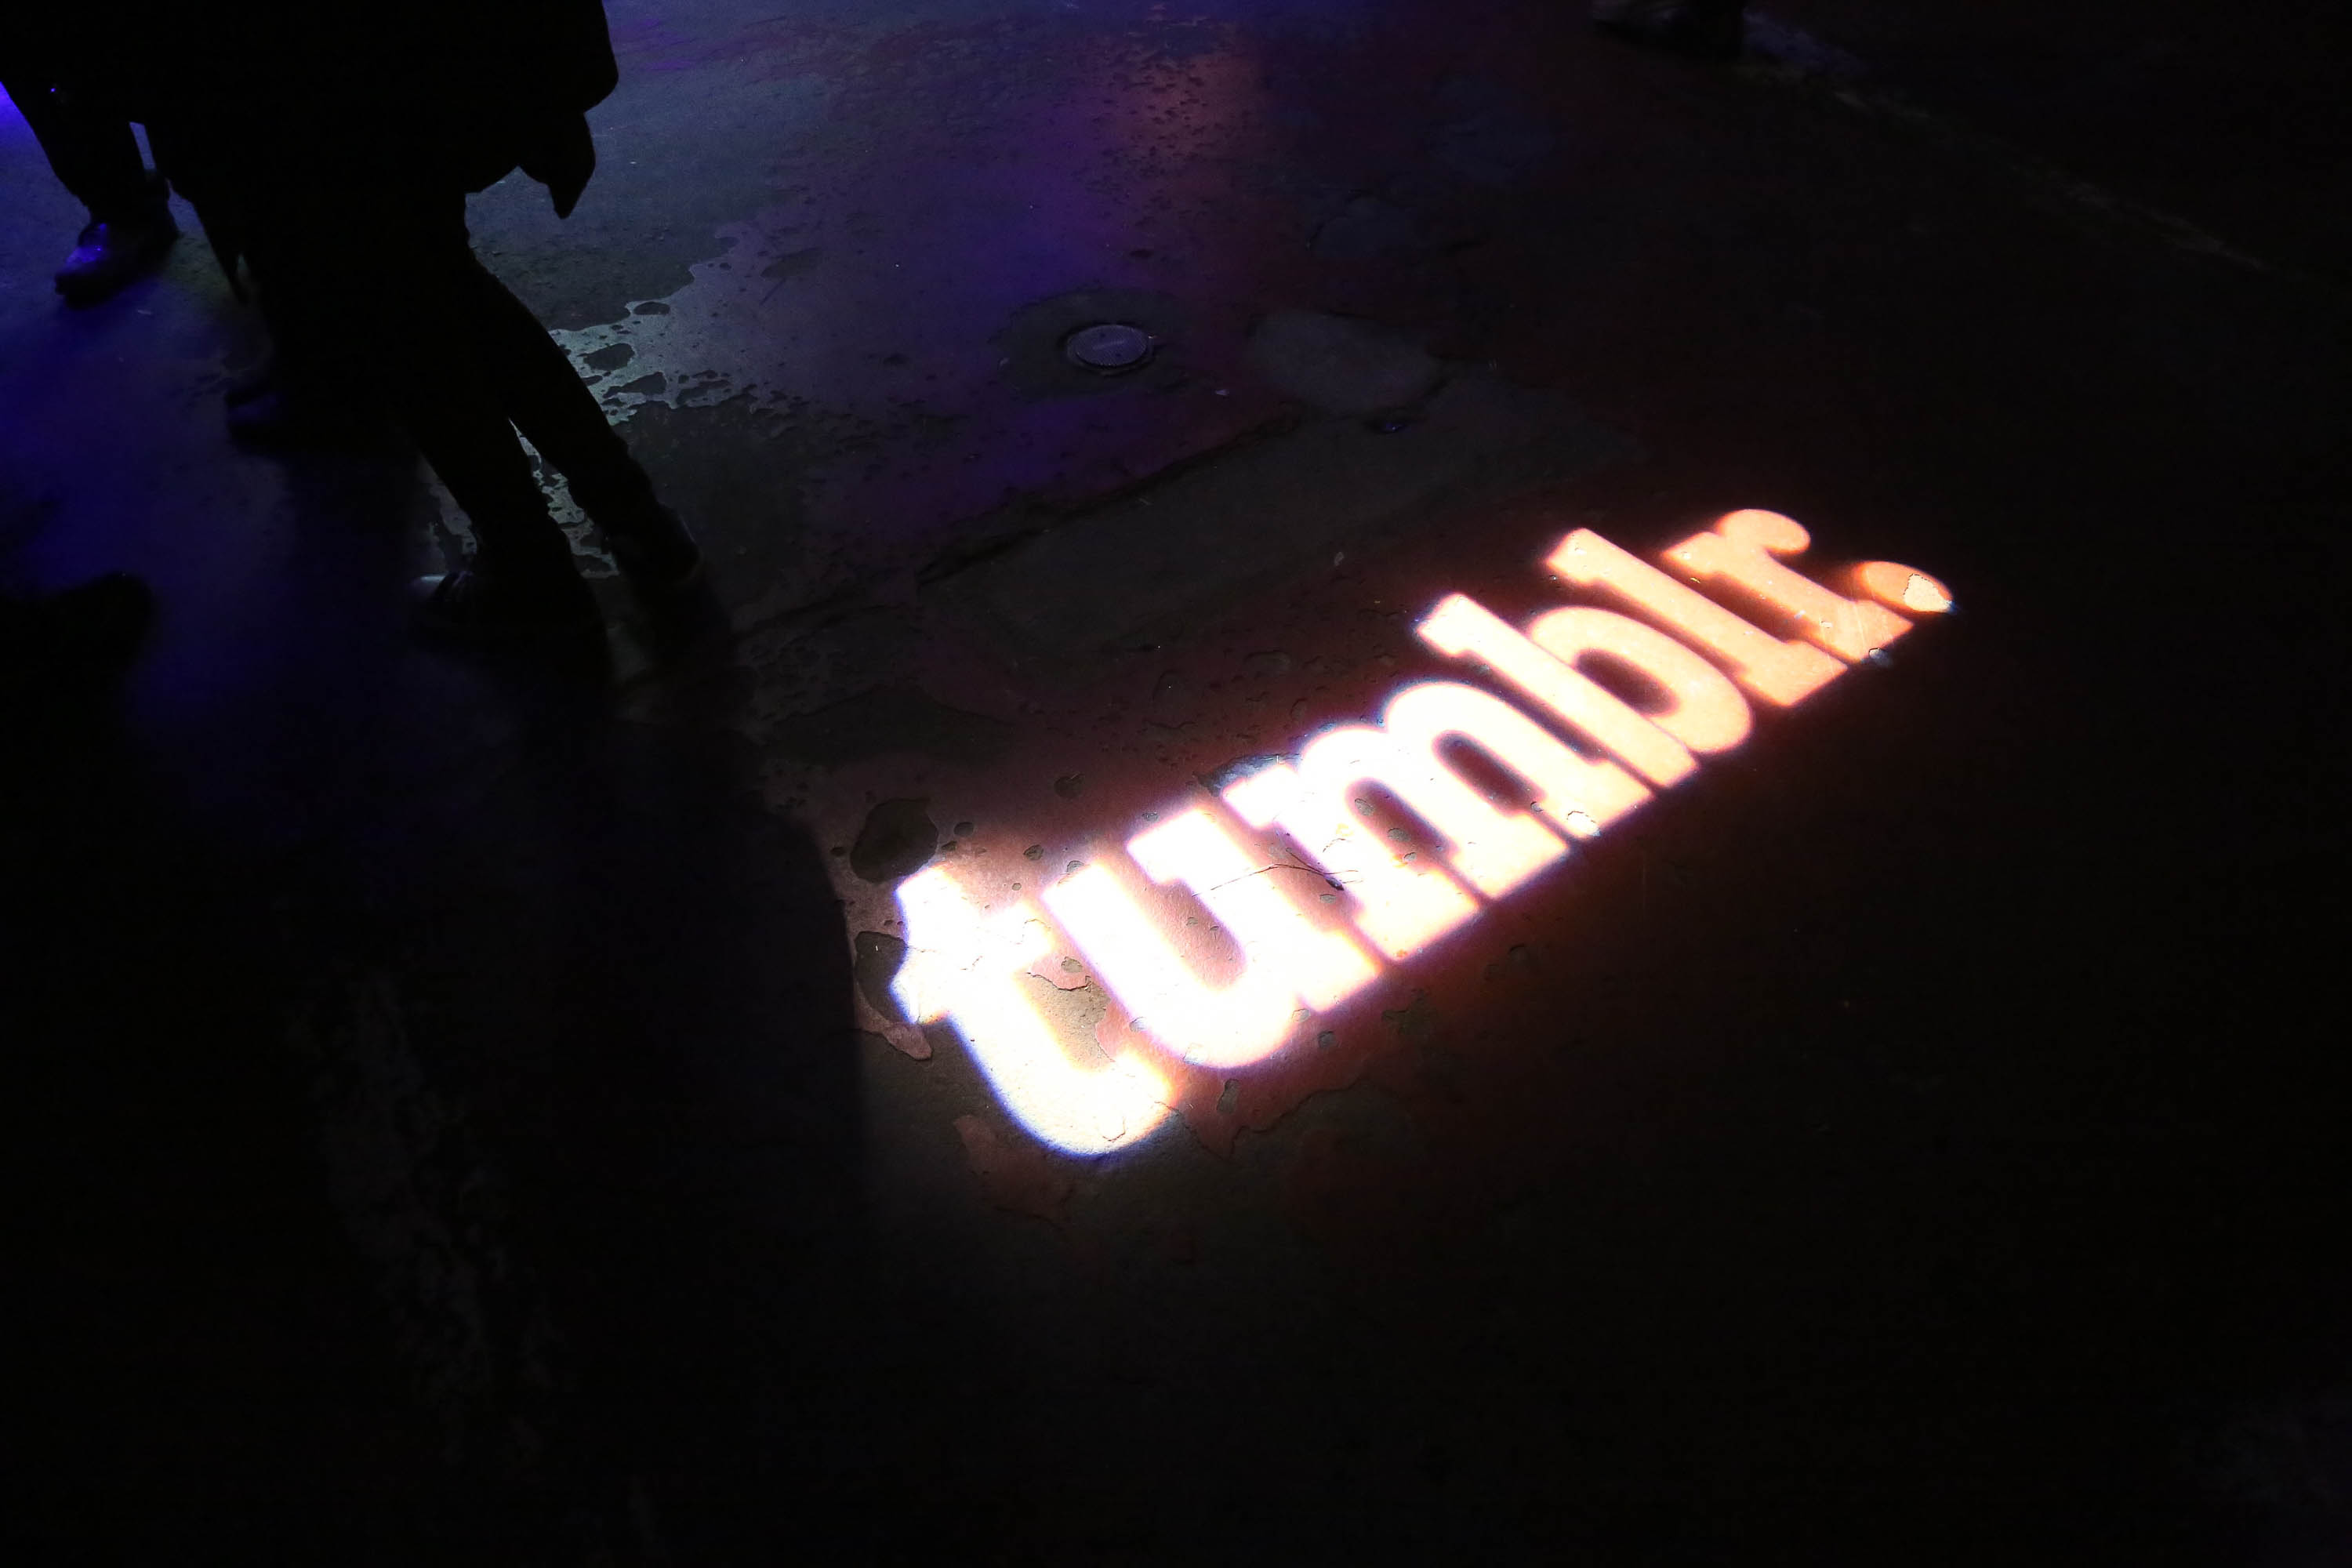 Tumblr's Year In Review 2014